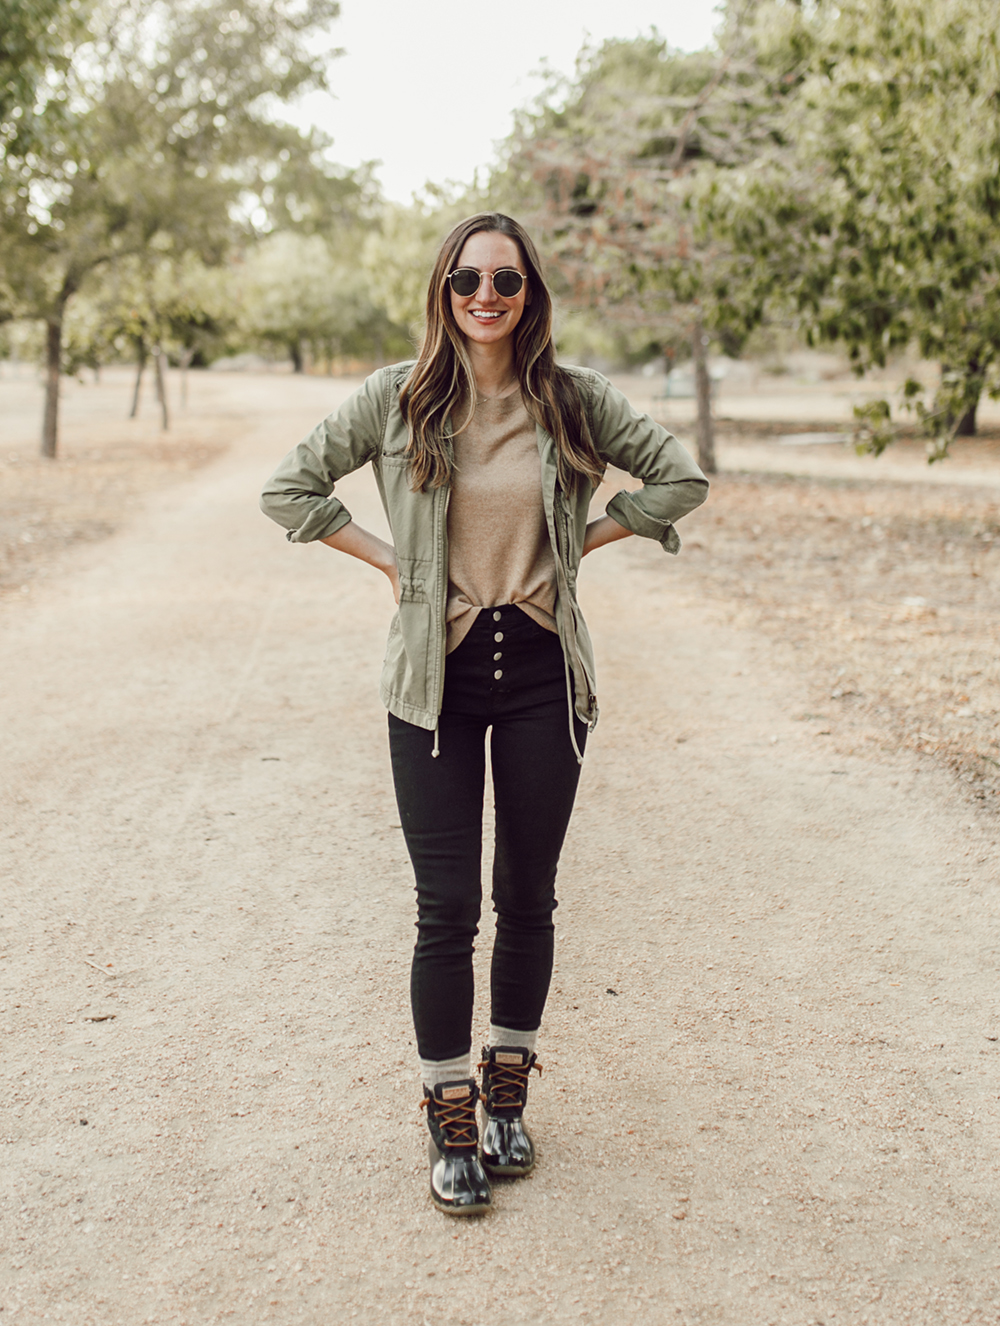 livvyland-blog-olivia-watson-austin-texas-lifestyle-fashion-blogger-sperry-saltwater-duck-boots-outfit-idea-fall-style-9